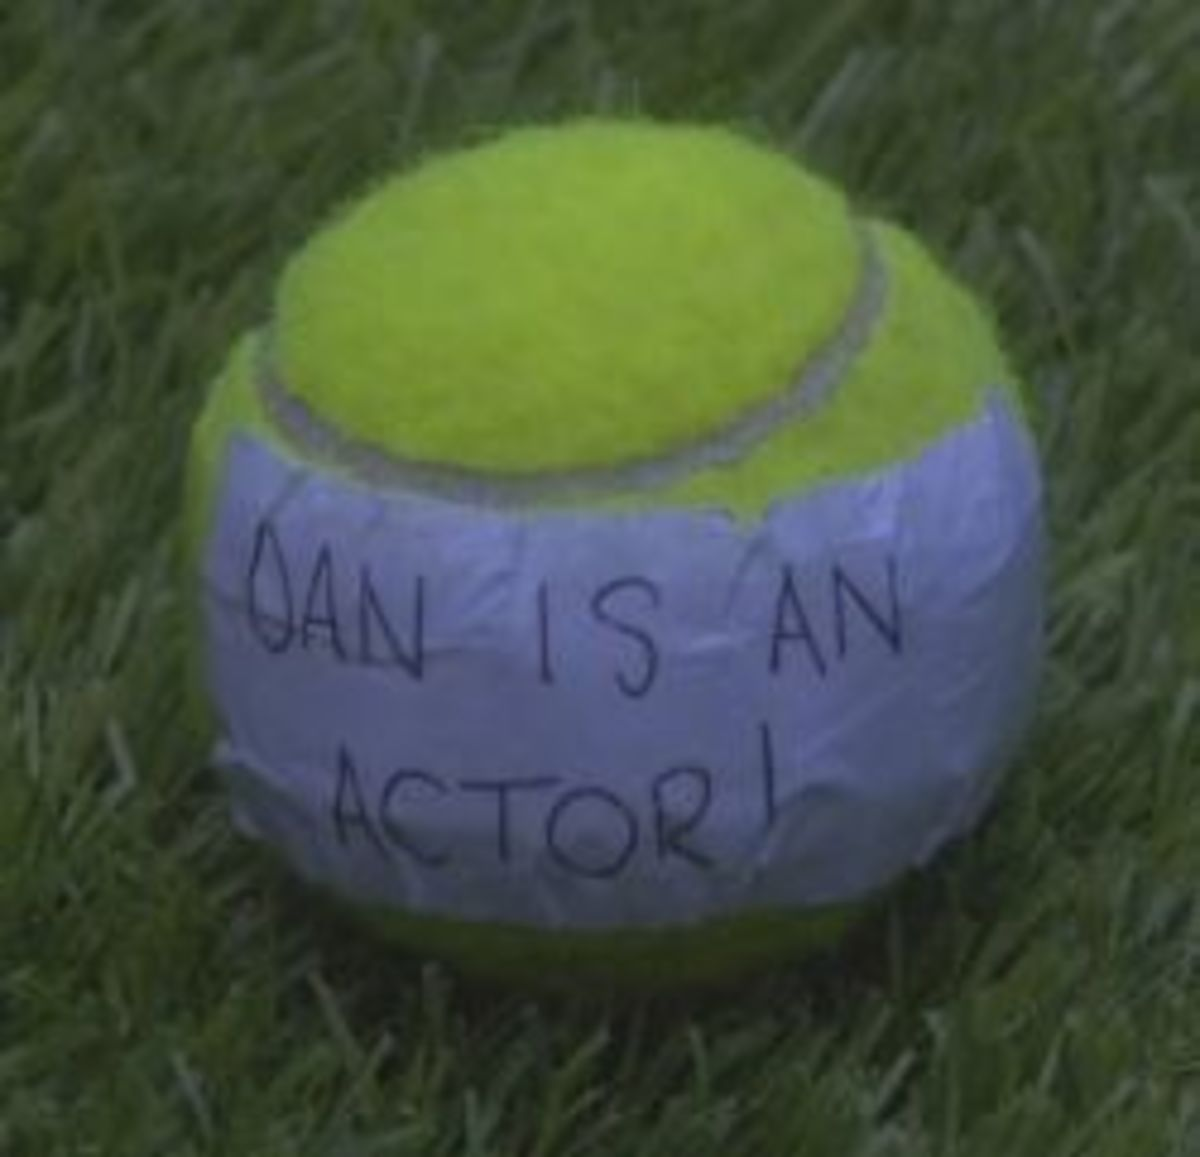 Dan is an Actor tennis ball message